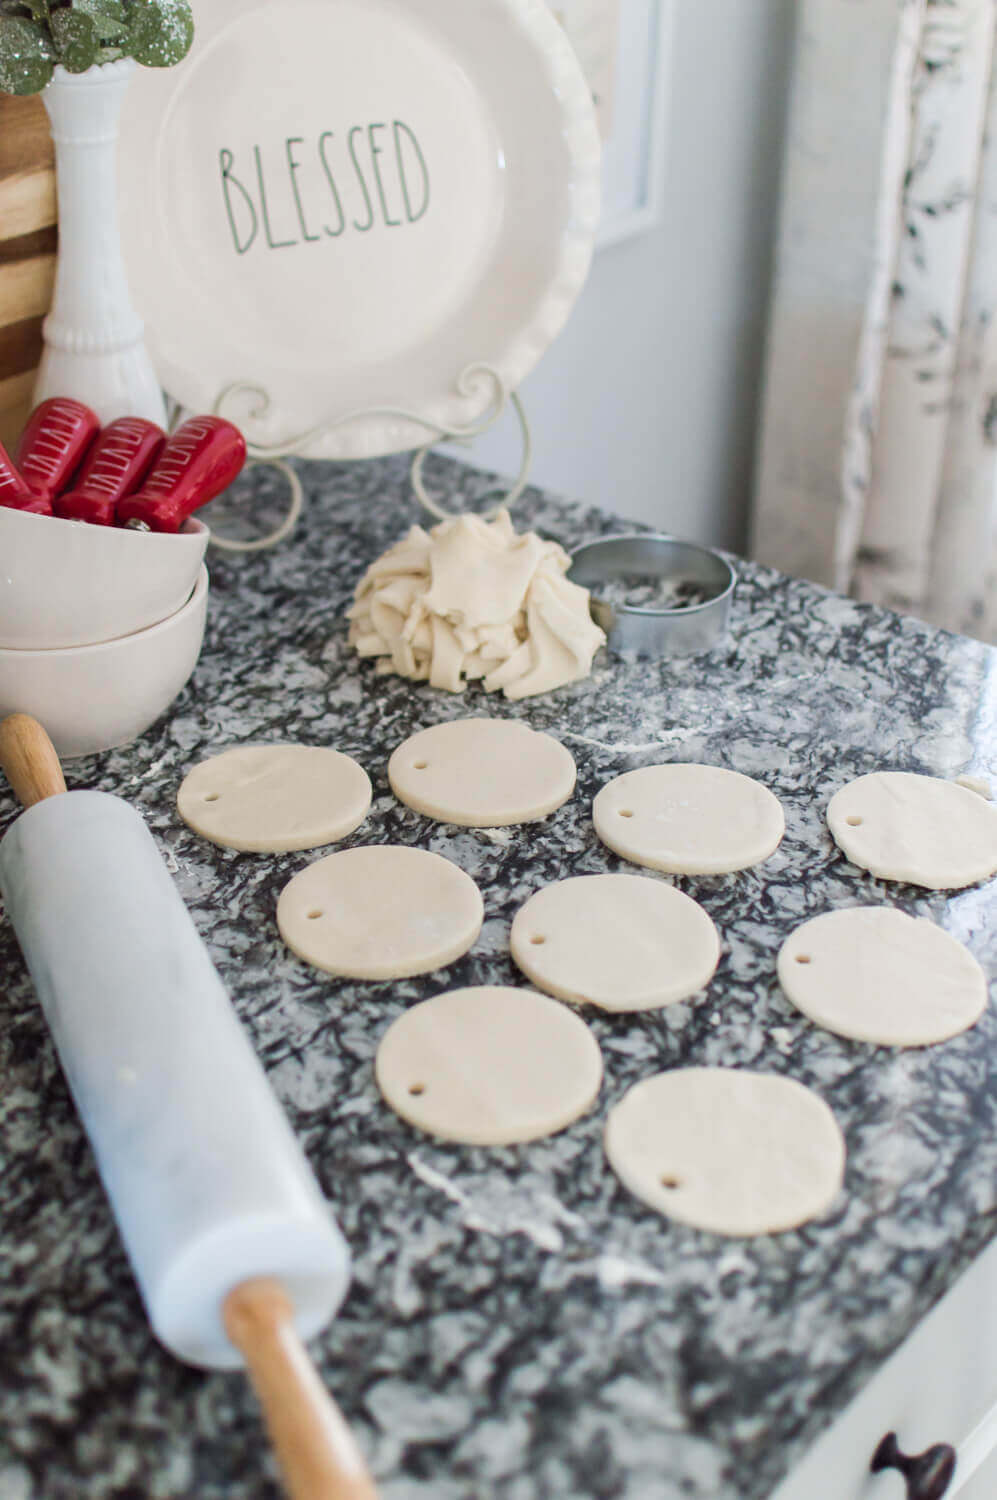 DIY Salt Dough Keepsake Ornaments / A Hosting Home Blog